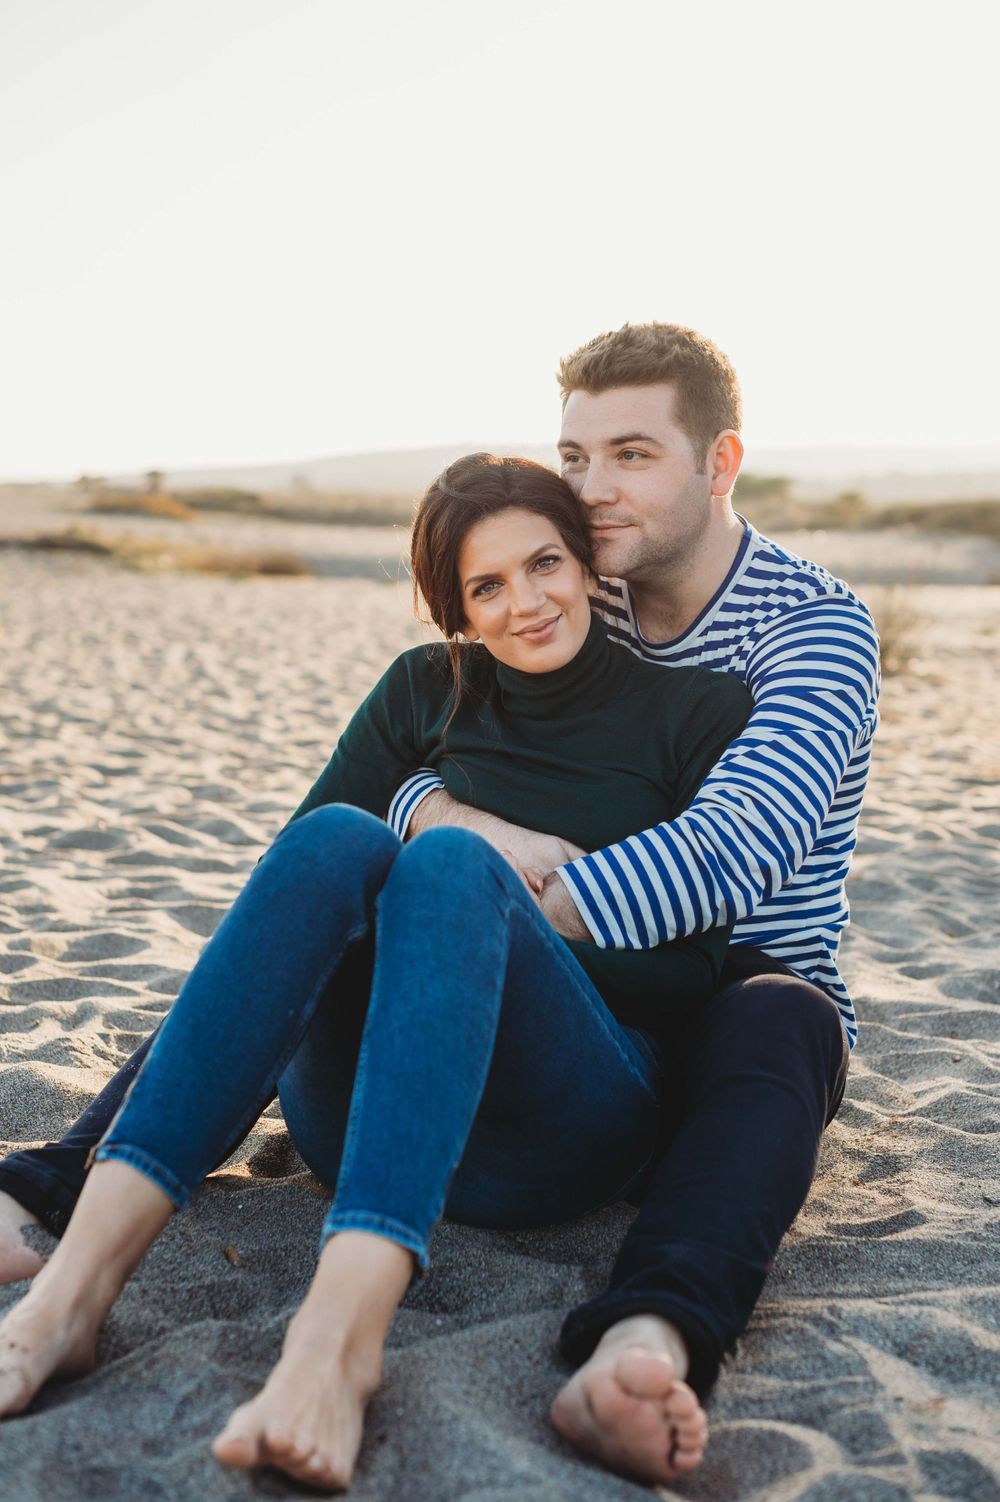 Portrait of a couple smiling on a beach